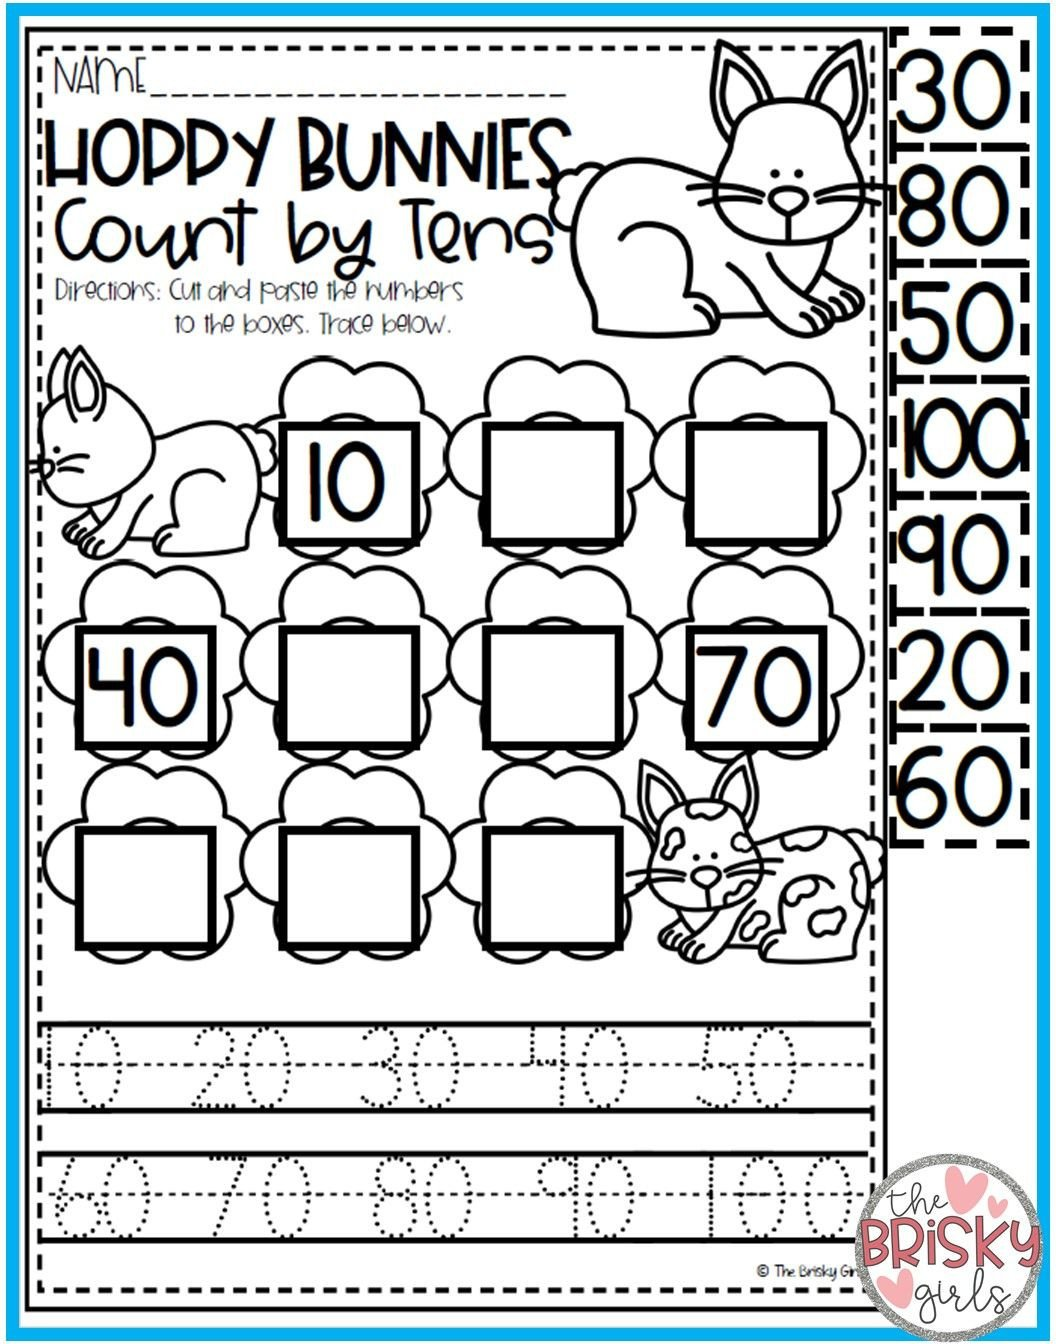 Social Studies Kindergarten Worksheets Pin by the Brisky Girls On Nºmero In 2020